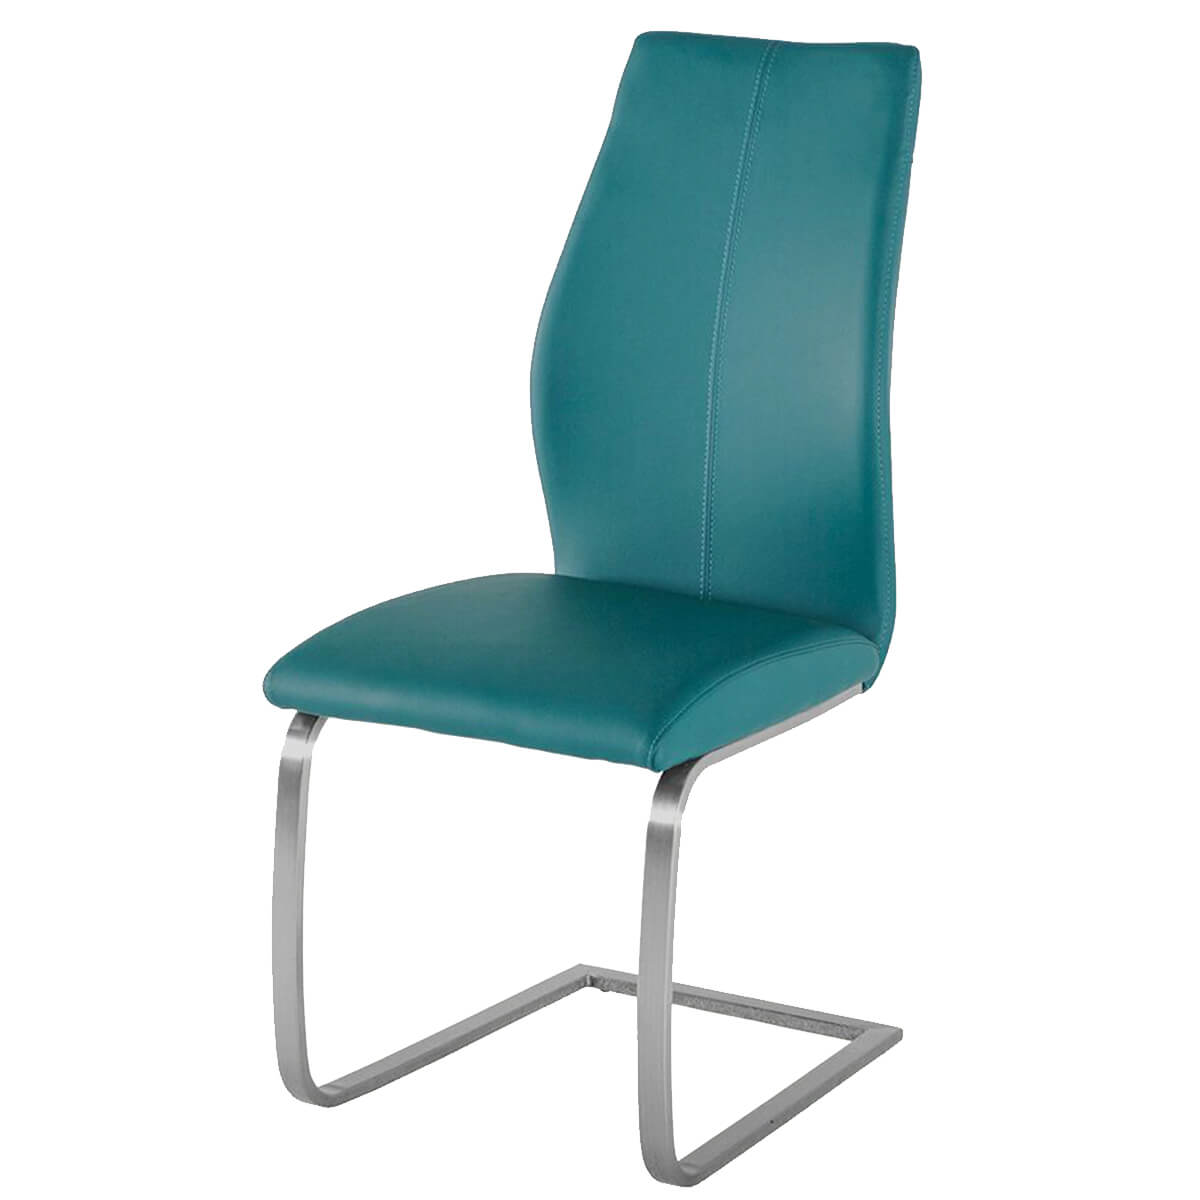 Teal Leather Chair Irma Multi Coloured Chairs Teal Faux Leather Dining Chairs